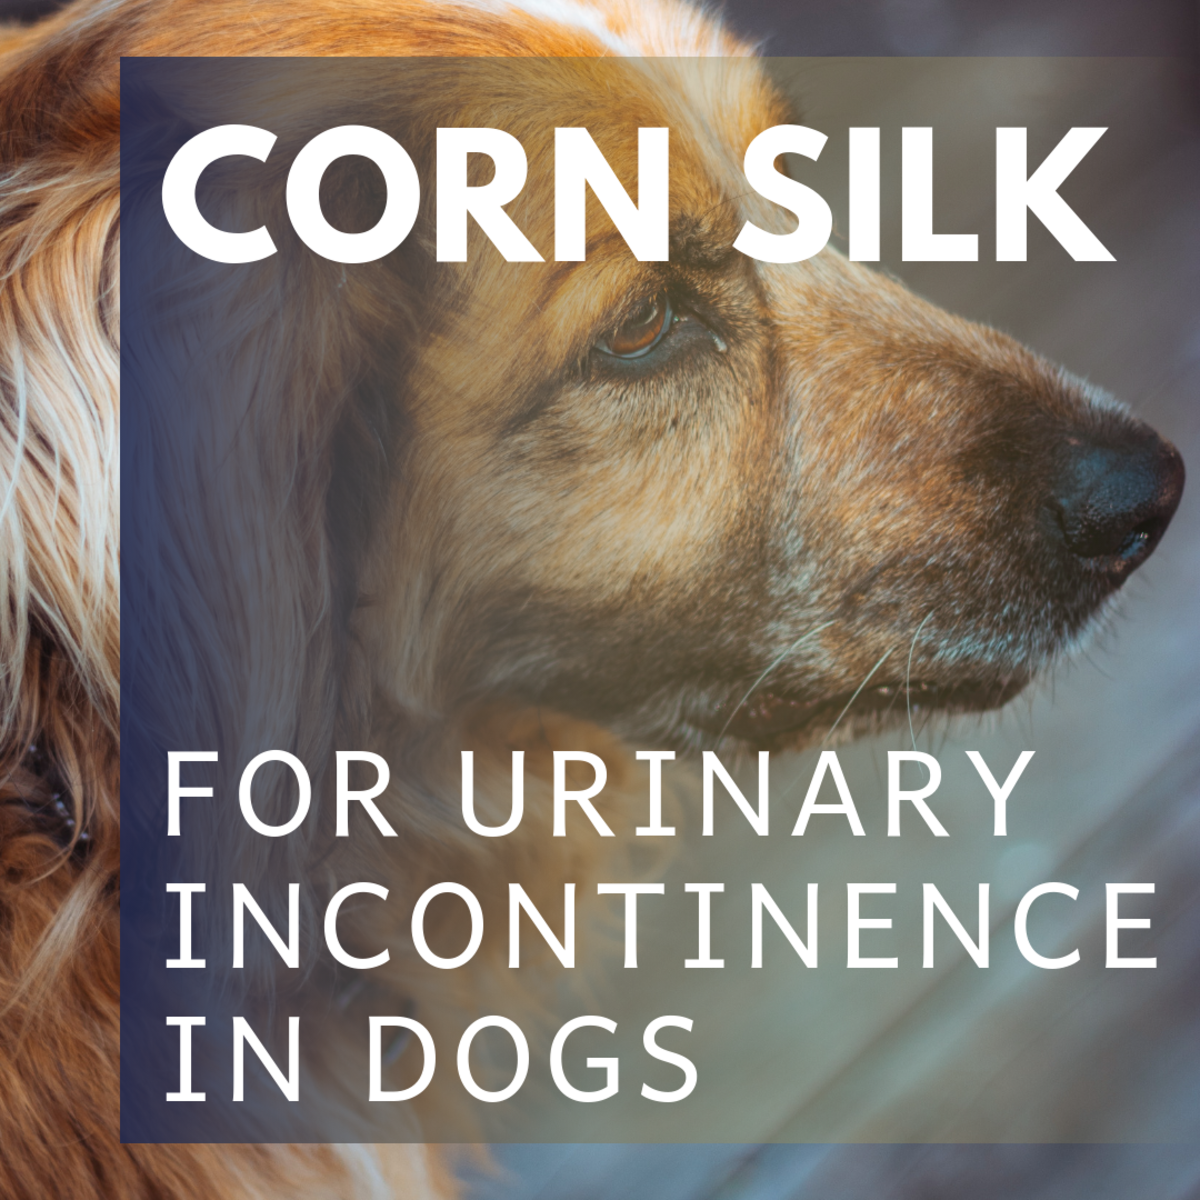 The Treatment of Canine Urinary Incontinence With Corn Silk | PetHelpful